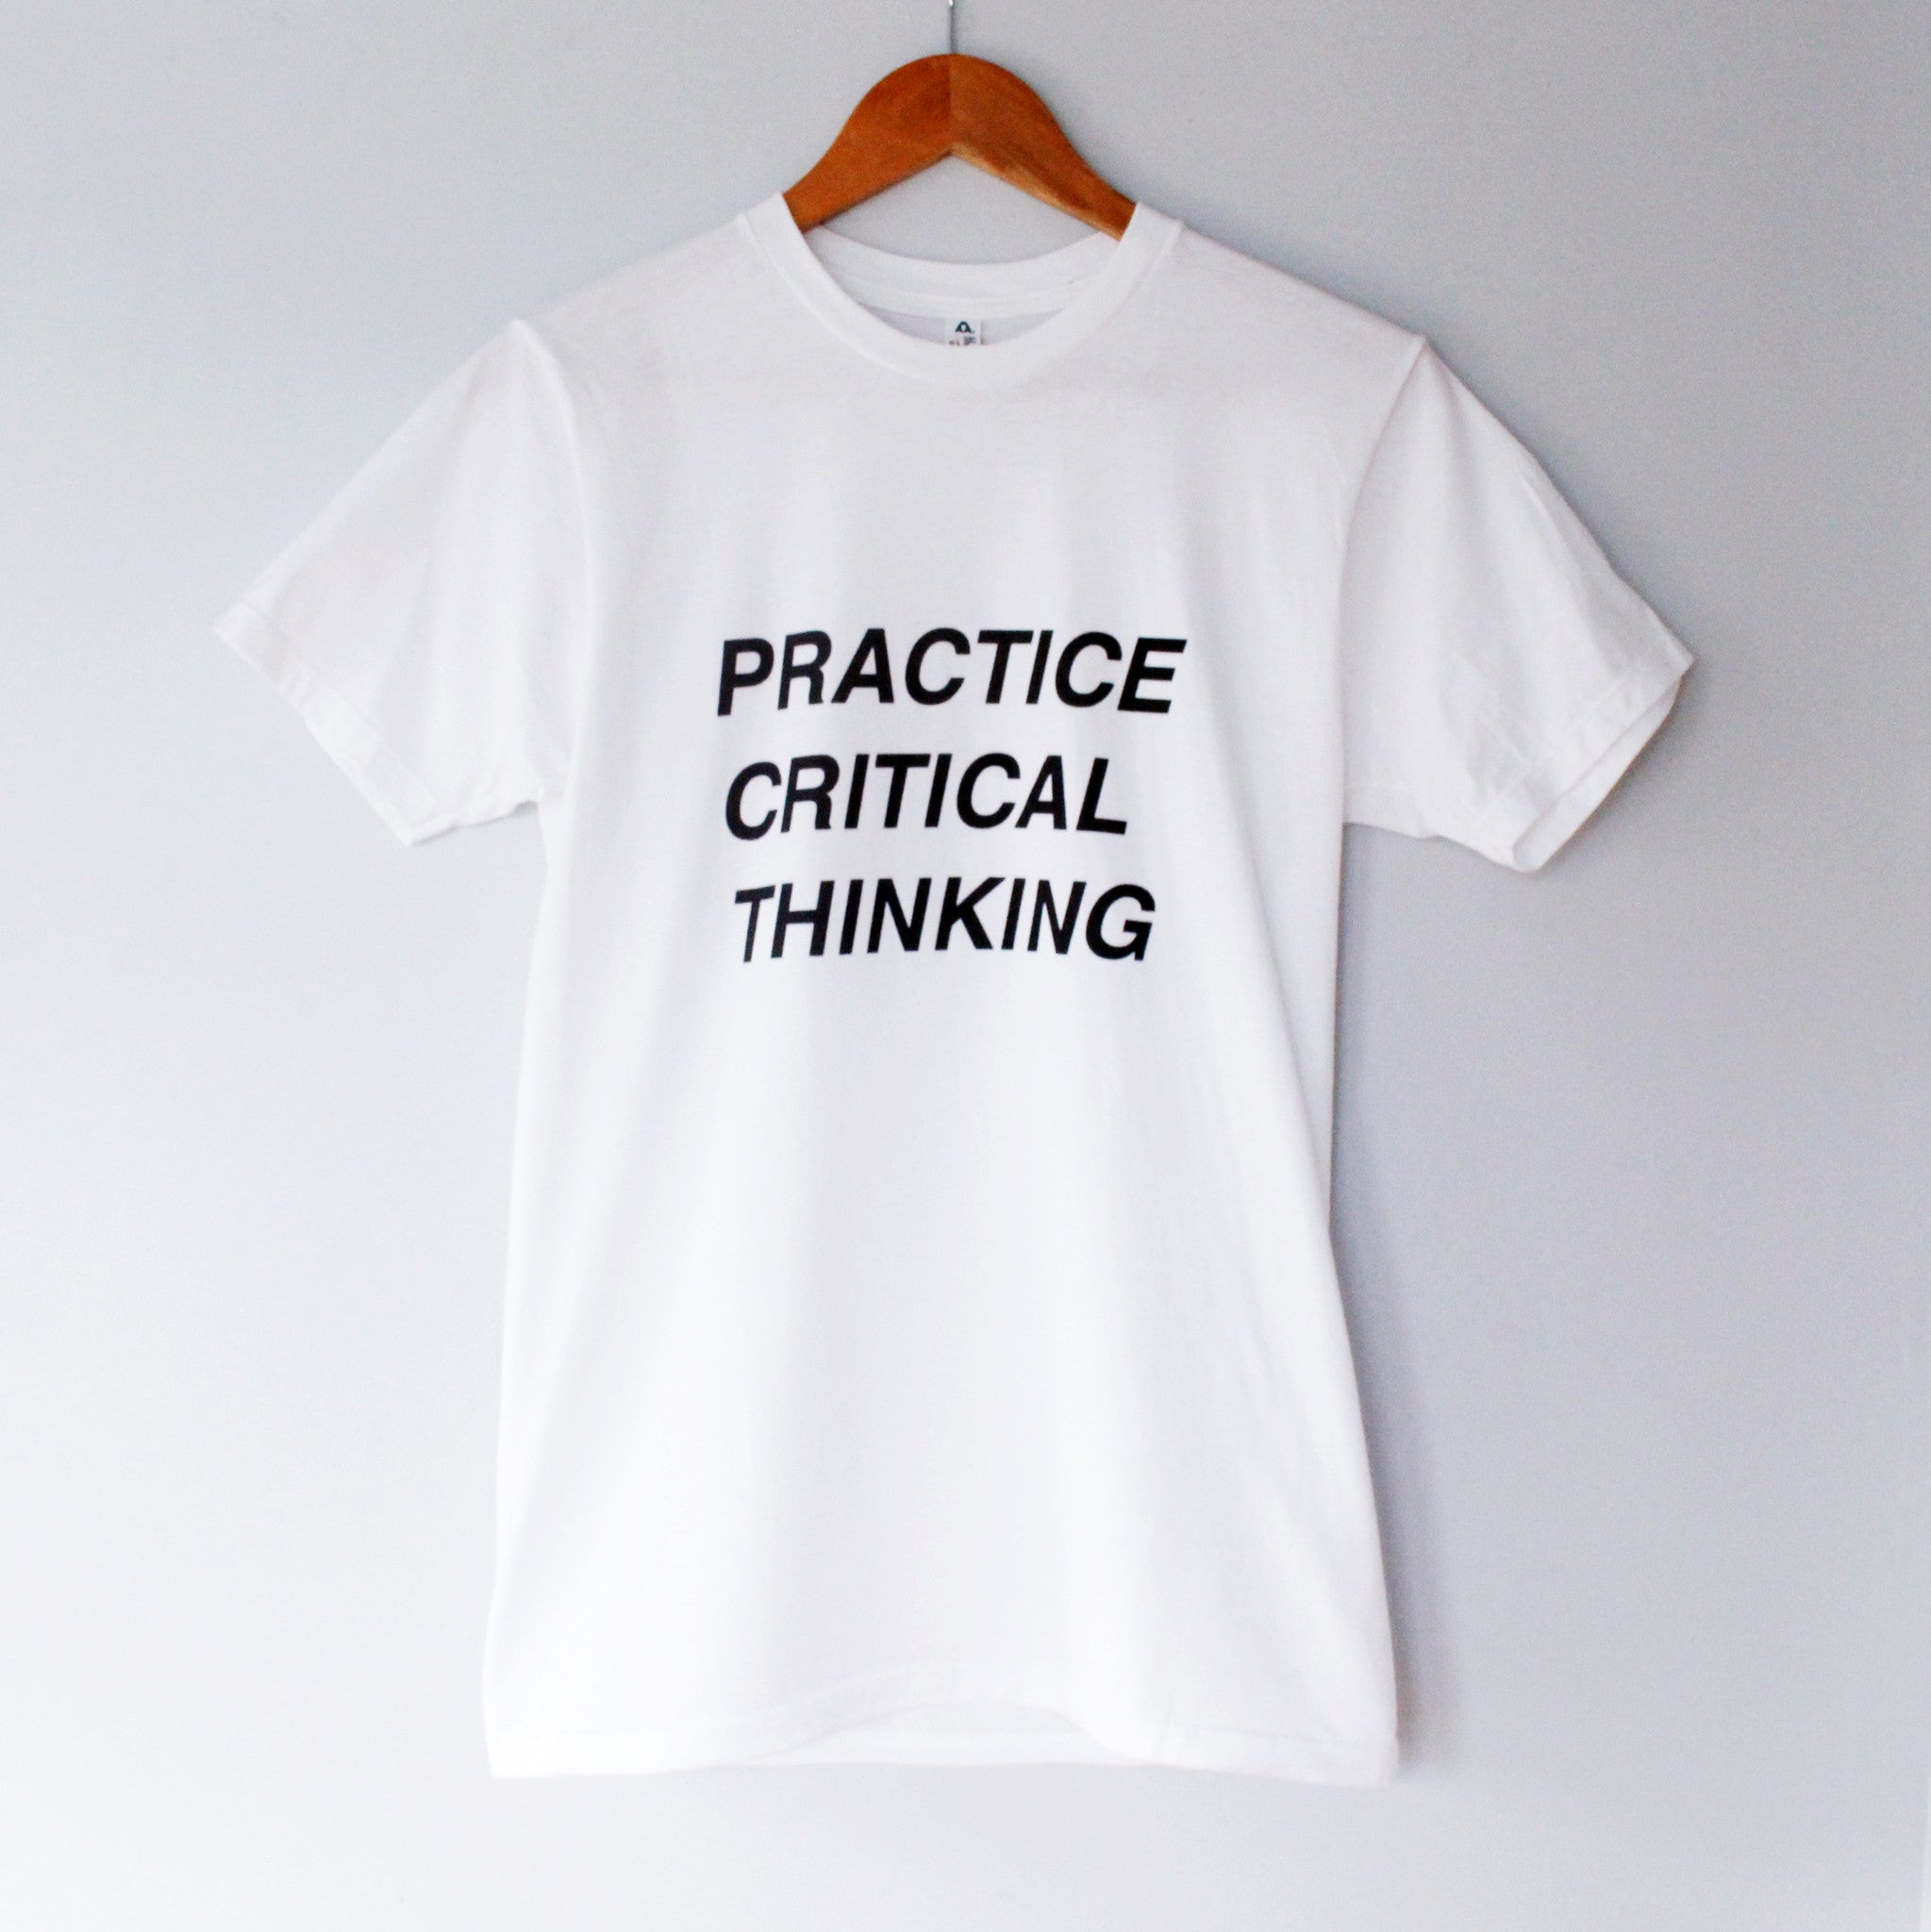 2017: Practice Critical Thinking T-Shirt | Proceeds go to charity